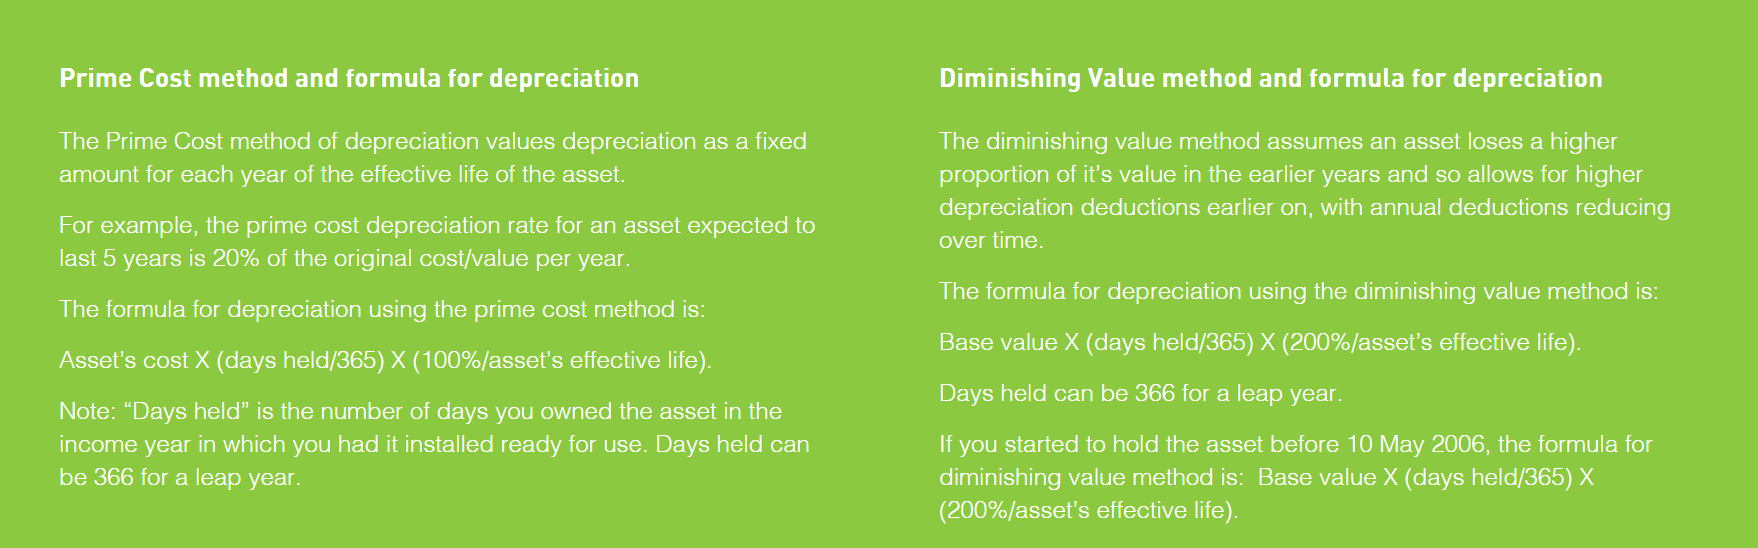 Prime Cost and Diminshing Value